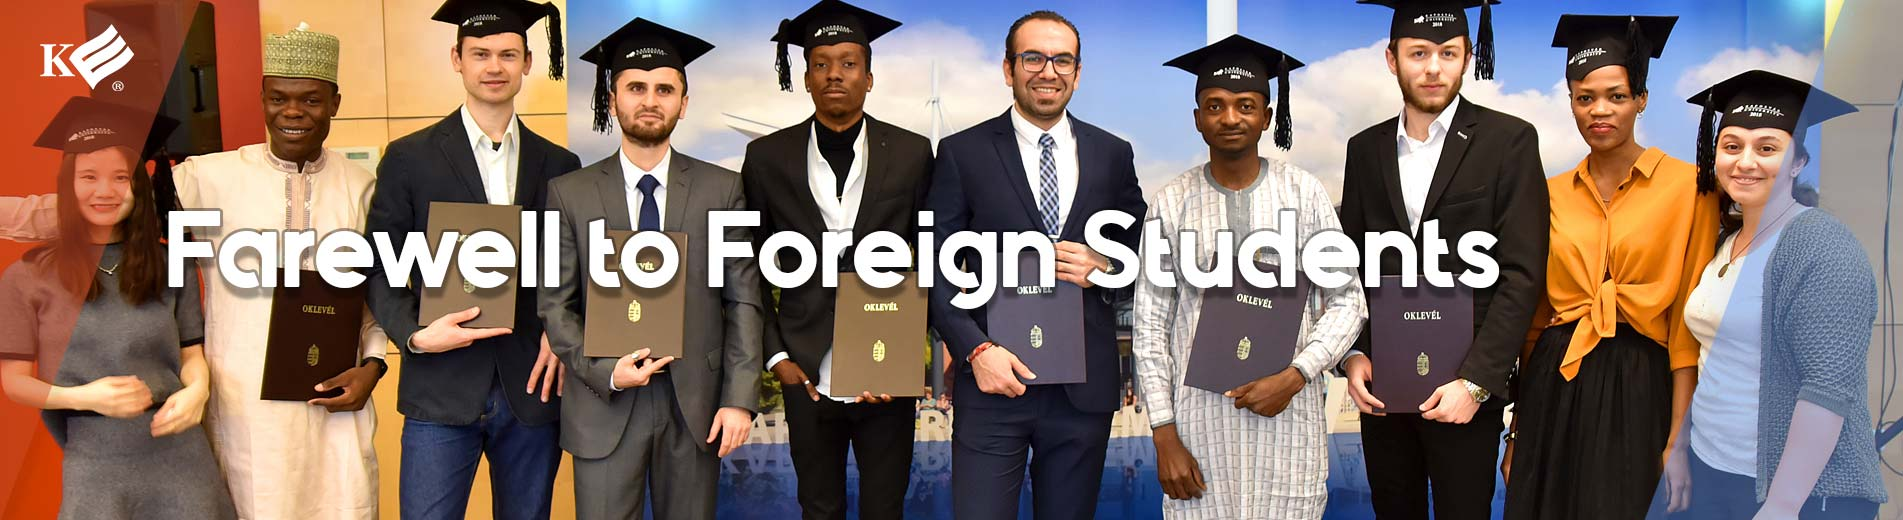 Farewell to Foreign Students